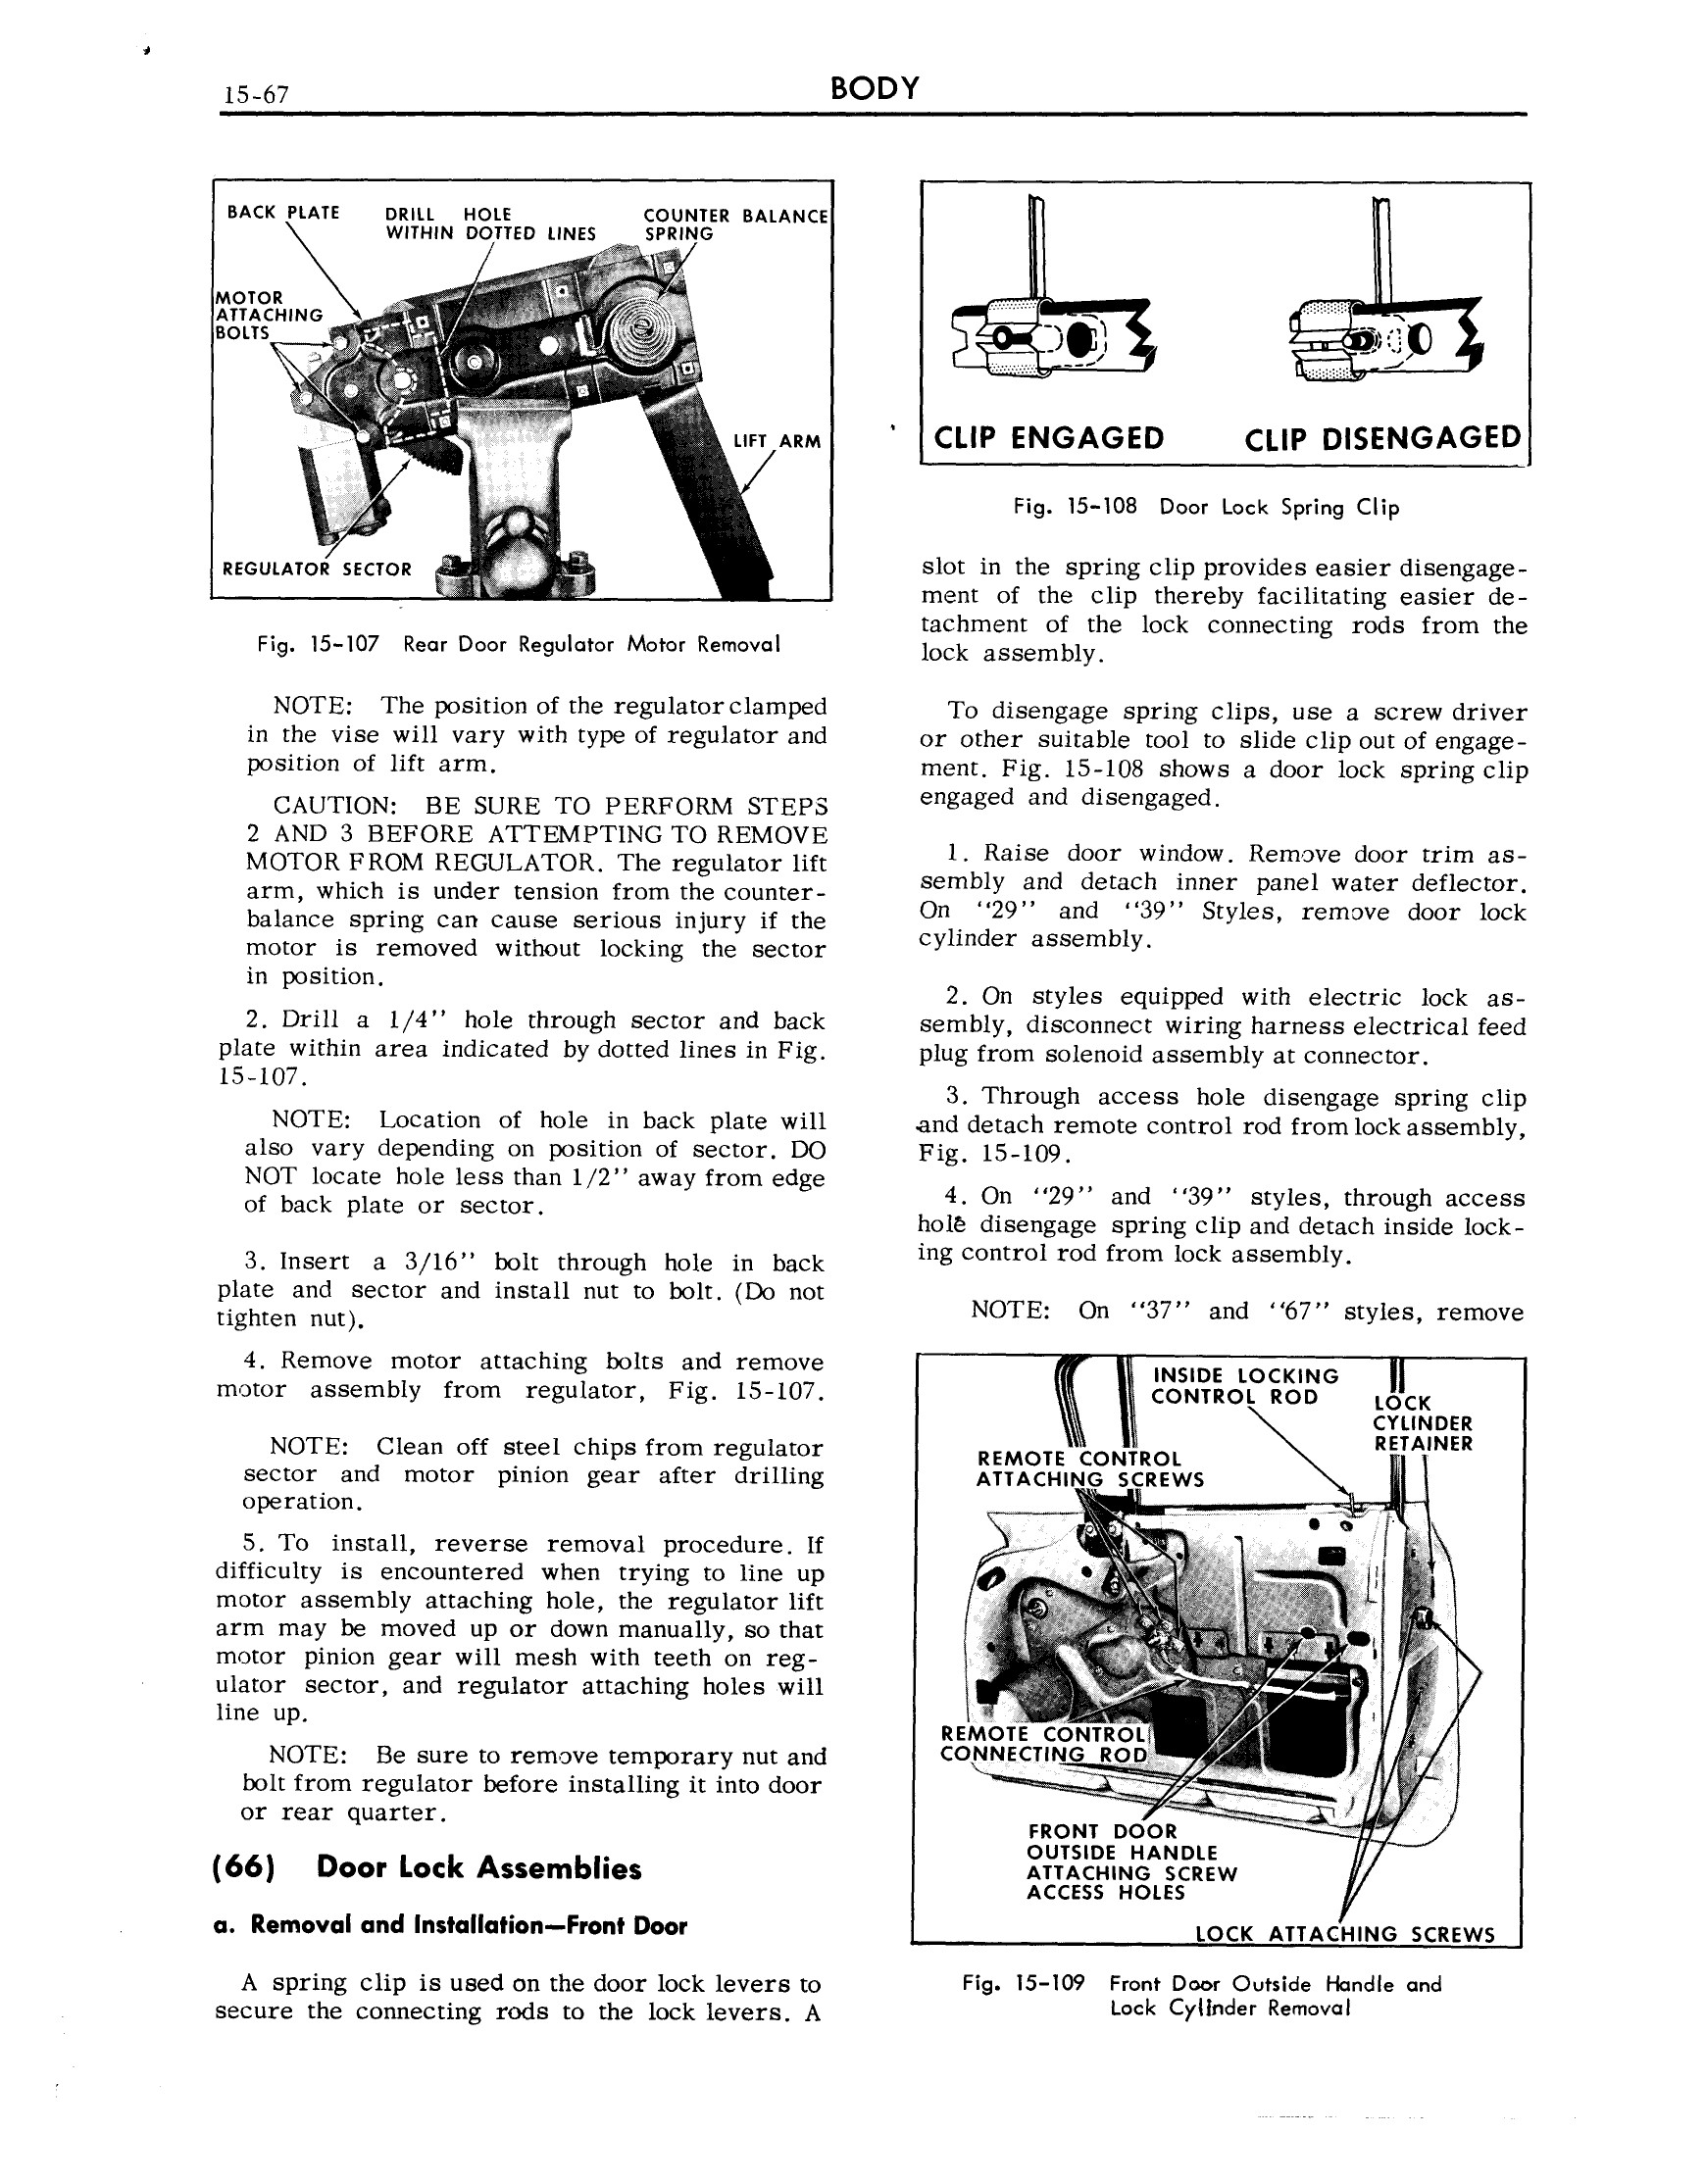 1959 Cadillac Shop Manual- Body Page 67 of 99